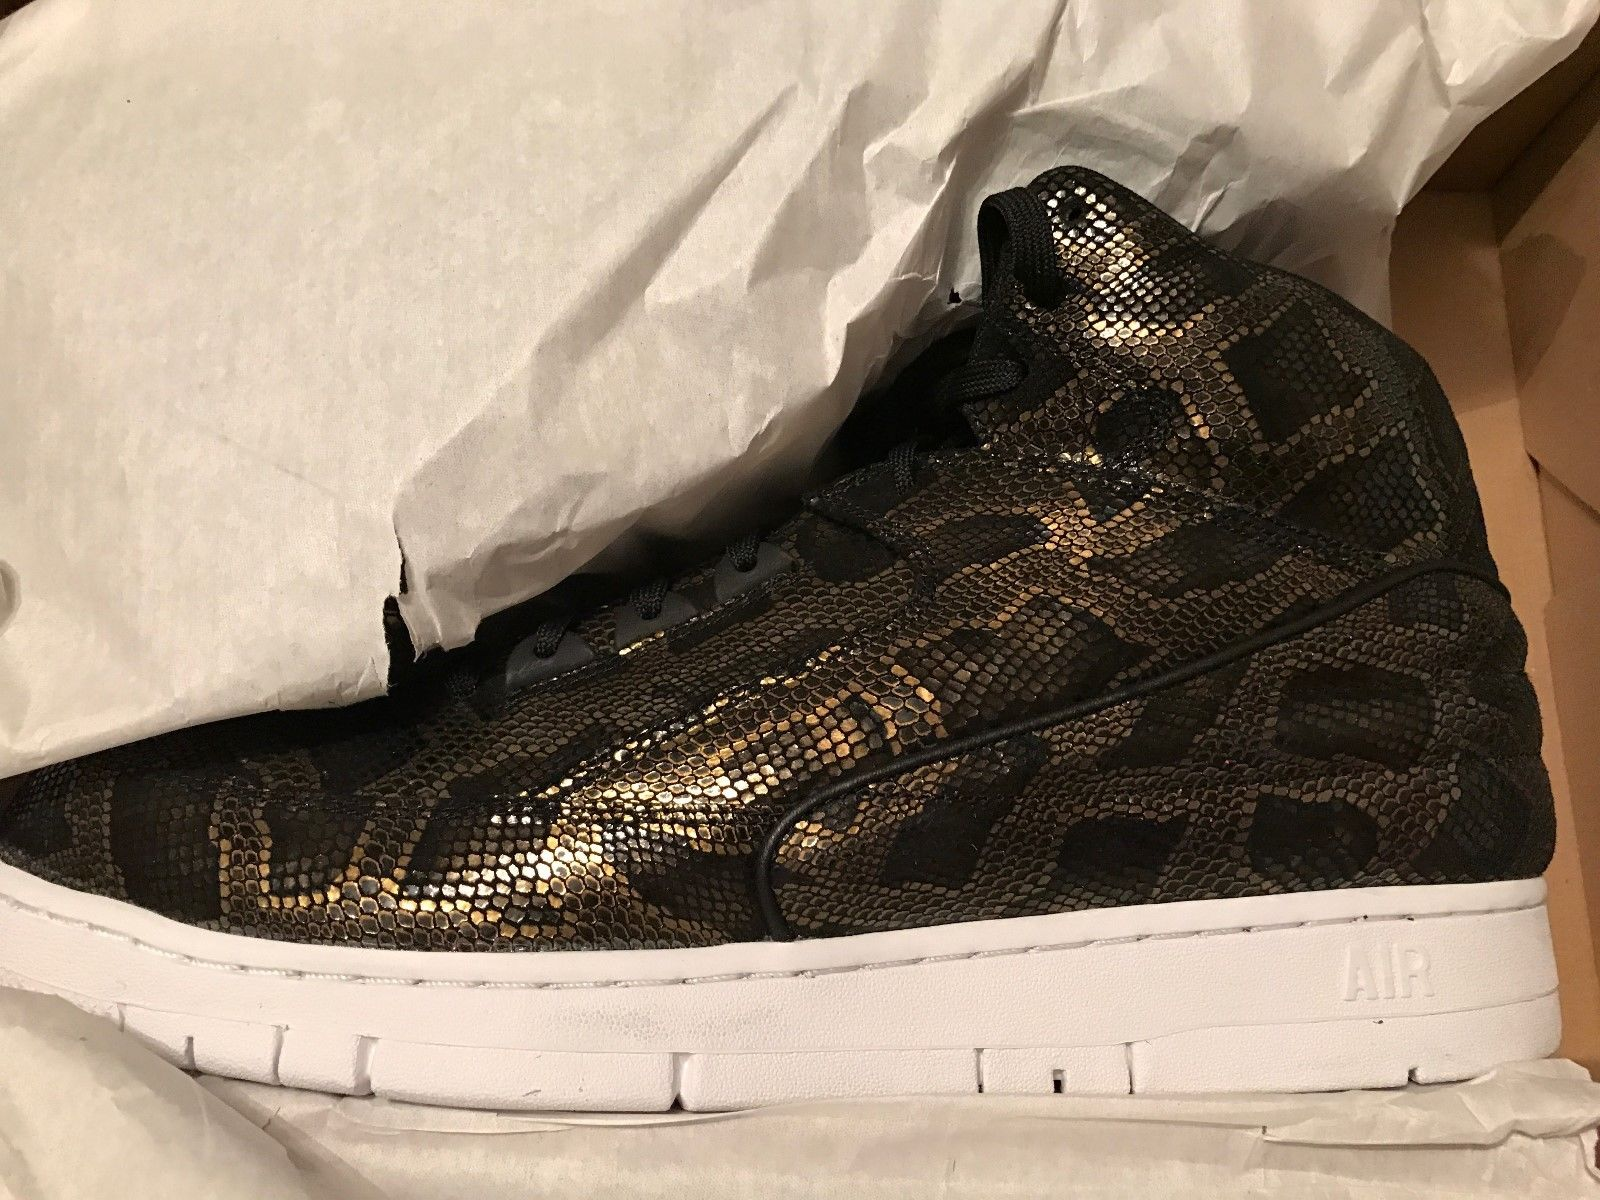 Image of Nike Air Python PRM Black White Snake Gold 705066 002 Size 13 - New